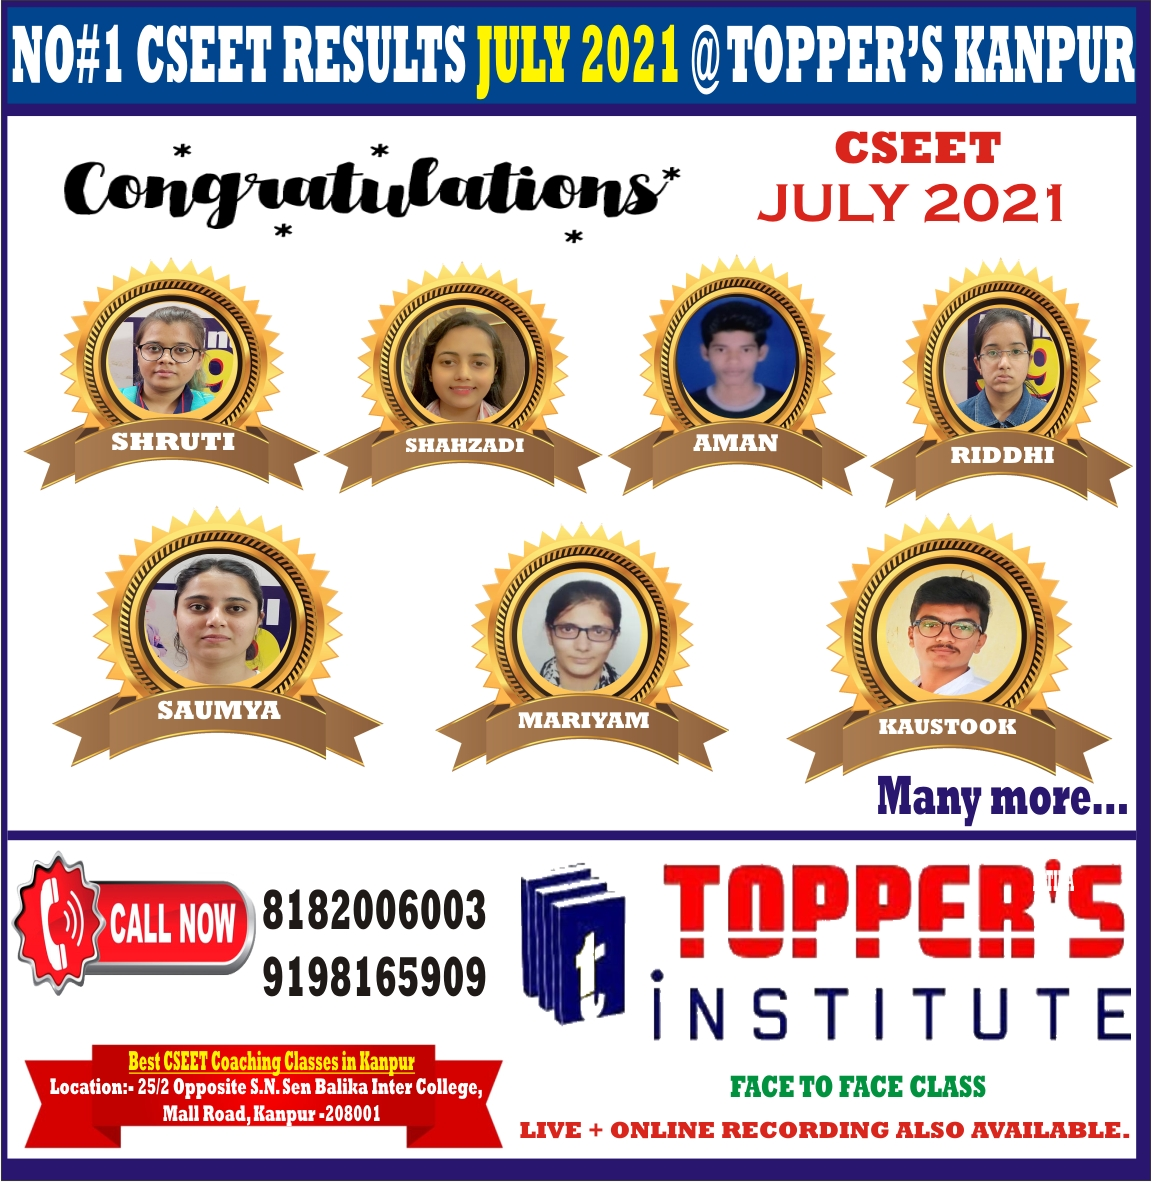 CSEET JULY 2021 EXAM RESULT BY TOPPERS KANPUR